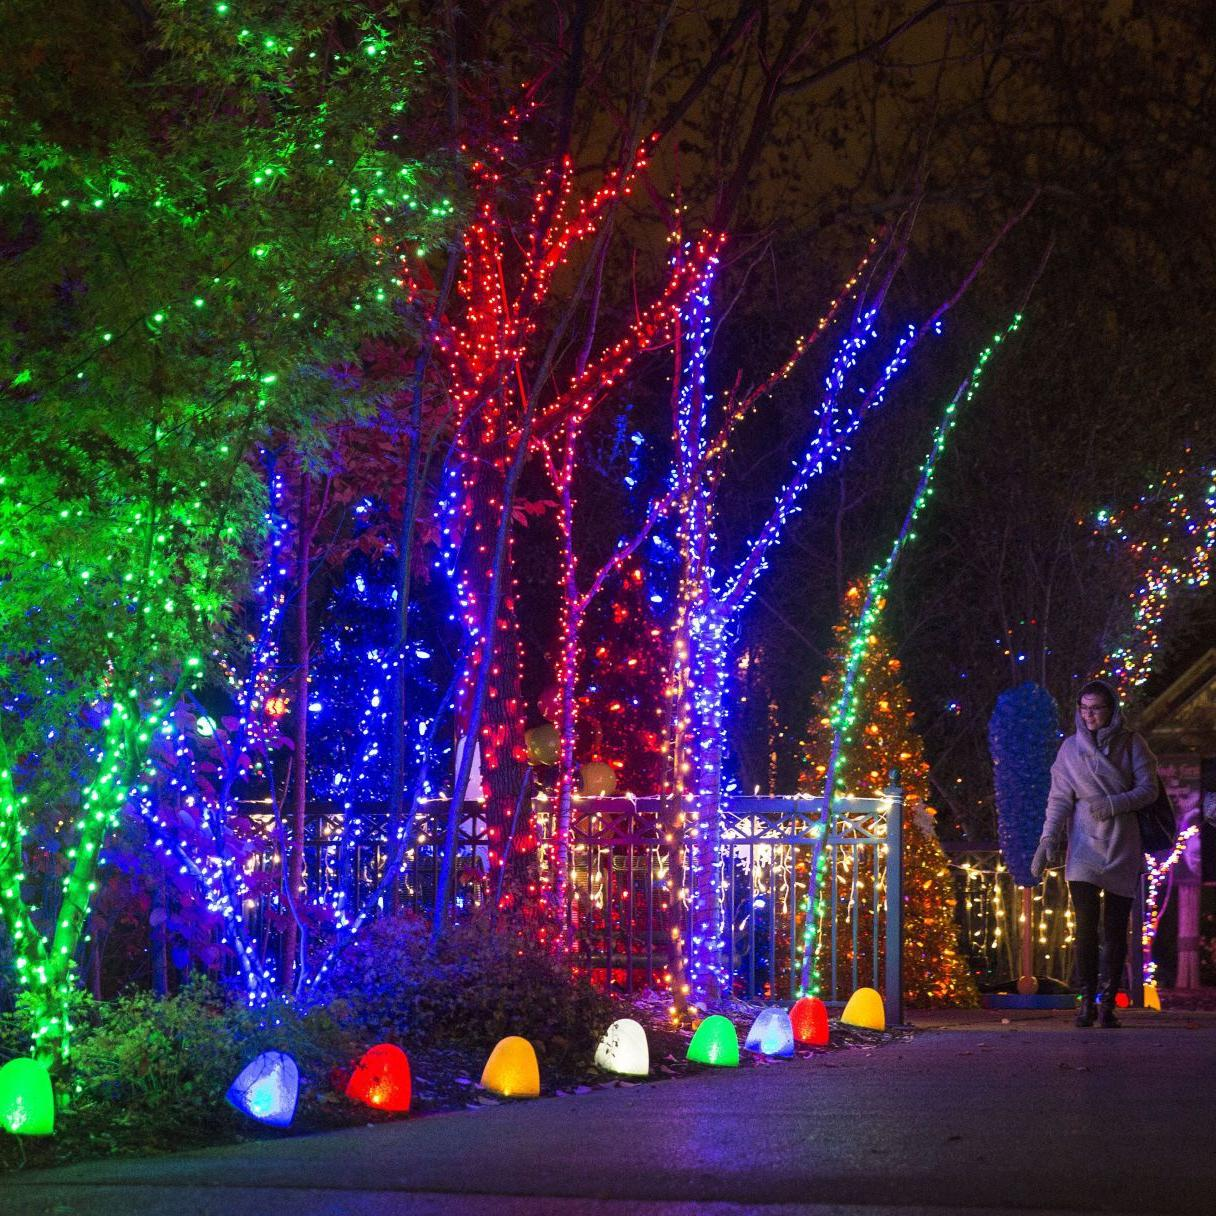 Rolla Christmas Lights Dec 2021 St Louis Zoo In The Running For Best Holiday Lights Joe S St Louis Stltoday Com